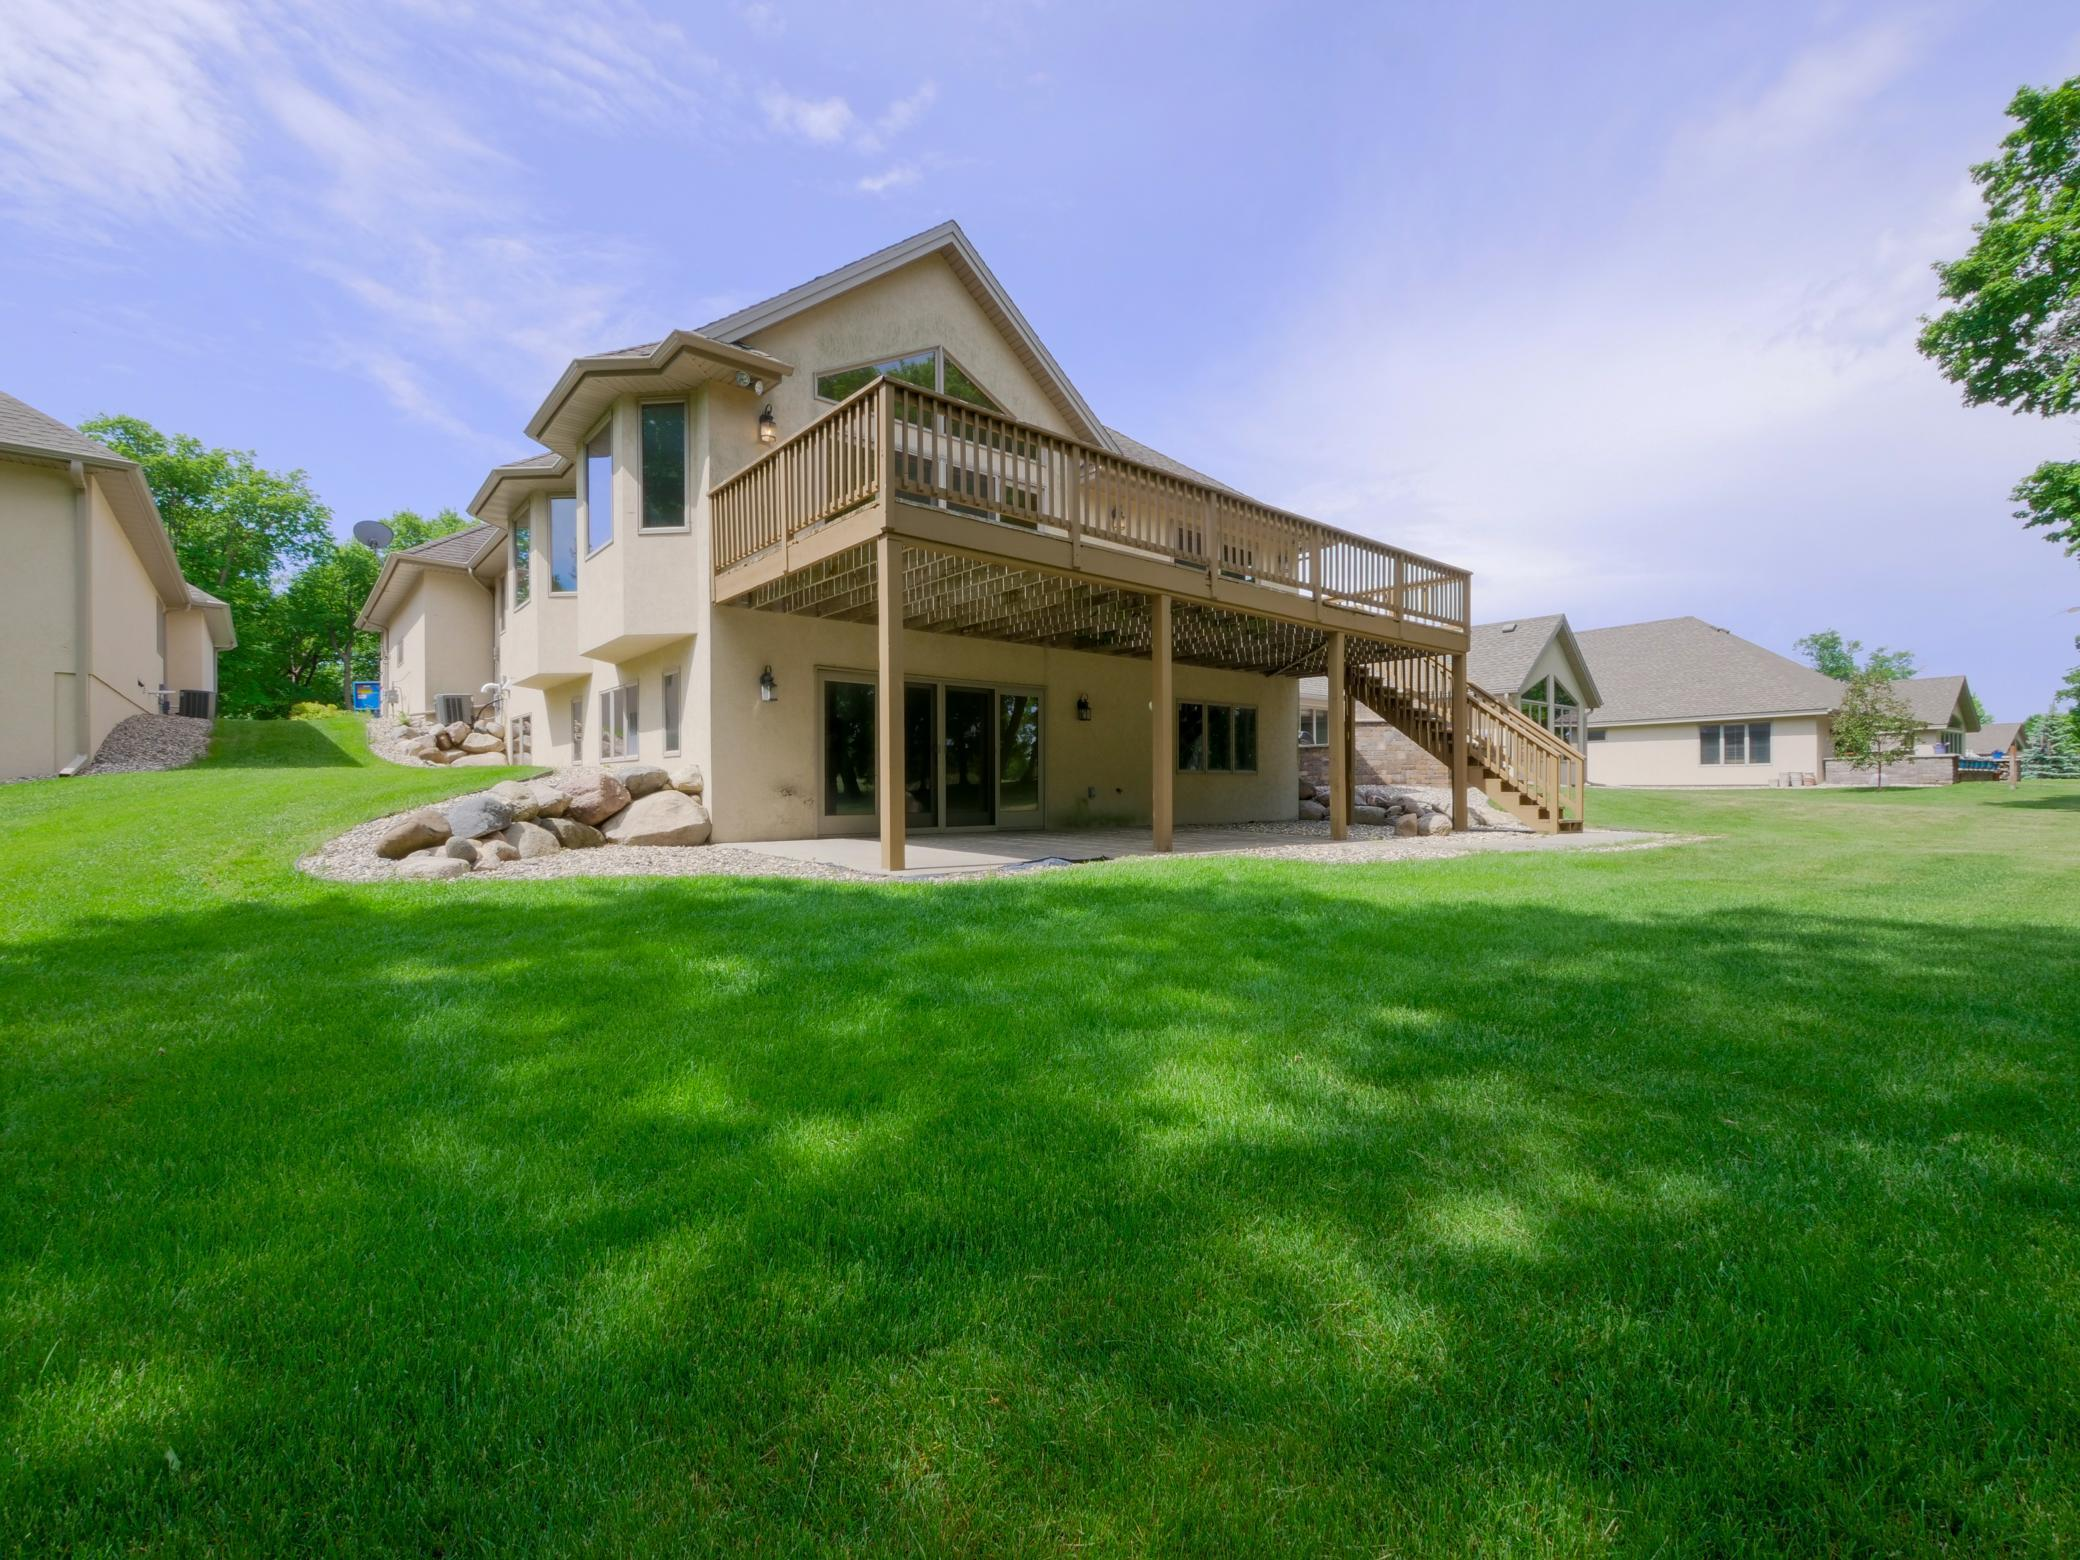 Rare opportunity to get a home on Lake Geneva Golf Course at this great price! This large rambler with walk-out basement sits on one of the prettiest lots on the Golf Course! The 36x12 deck overlooks the fairway of hole 5-great!Large master suite with gas fireplace opens onto deck.  4 bedrooms, 3 baths plus office and large family room with wetbar- opens onto the patio. There's so much potential- just needs some paint, flooring, love and attention! Enjoy living in this great neighborhood for a steal! Lawncare, snow removal, well water, in-ground sprinkler system all taken care for you by the association. Plus the best assn pool in town with 2 bathrooms, showers, and patio furniture all taken care of and yours to use! Any age can buy here-no restrictions! Golfer's mecca! Famous Lake Geneva Golf Course is a 27 hole Championship Course with driving range, Restaurant, and professional golf academy! You couldn't build this 2920 Sq Ft home for this price anywhere let alone on this fab spot!